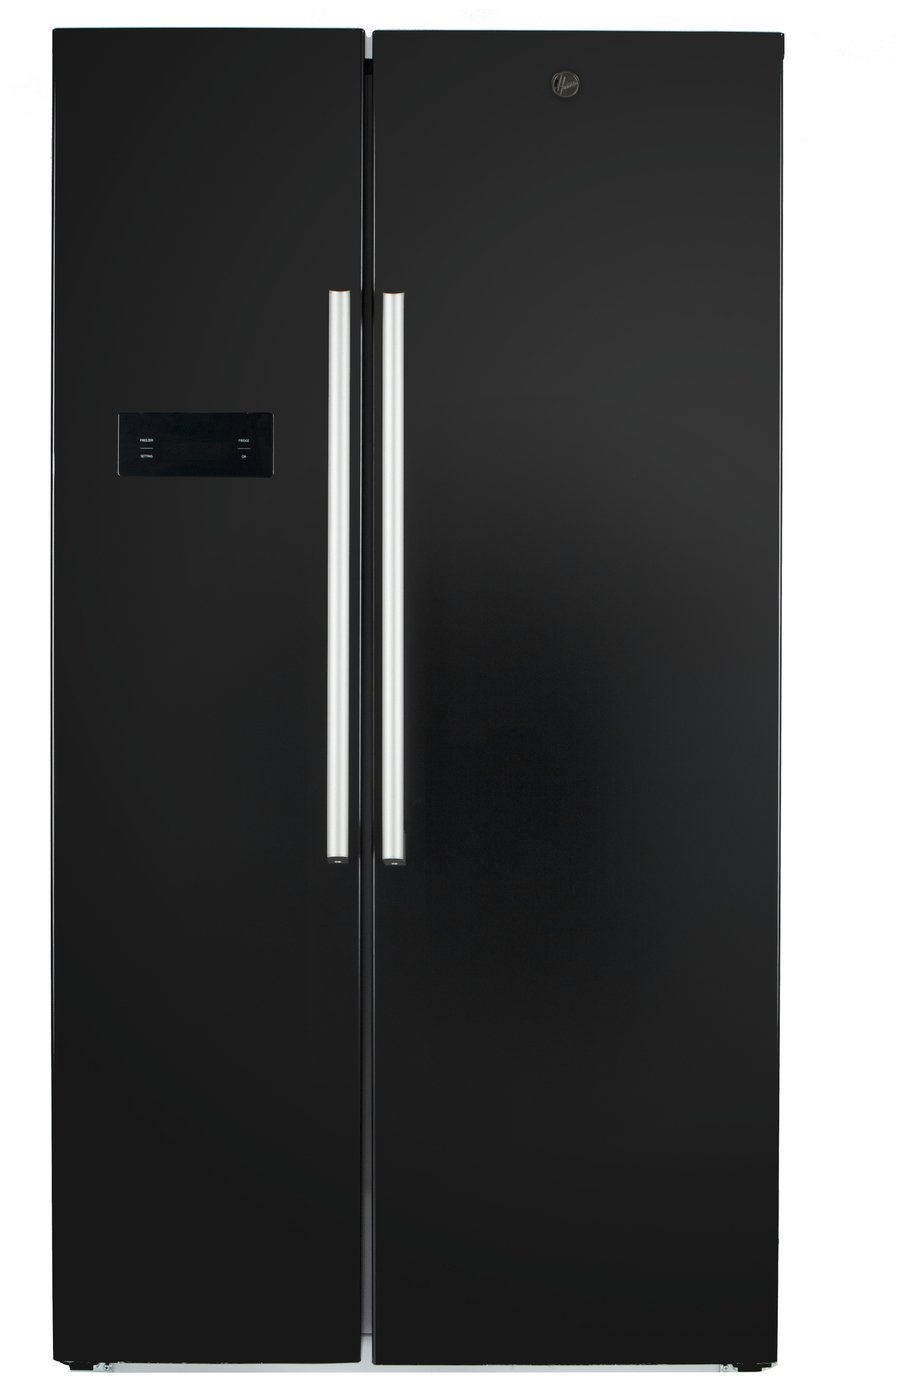 Hoover HSBSF 178BK American Fridge Freezer - Black